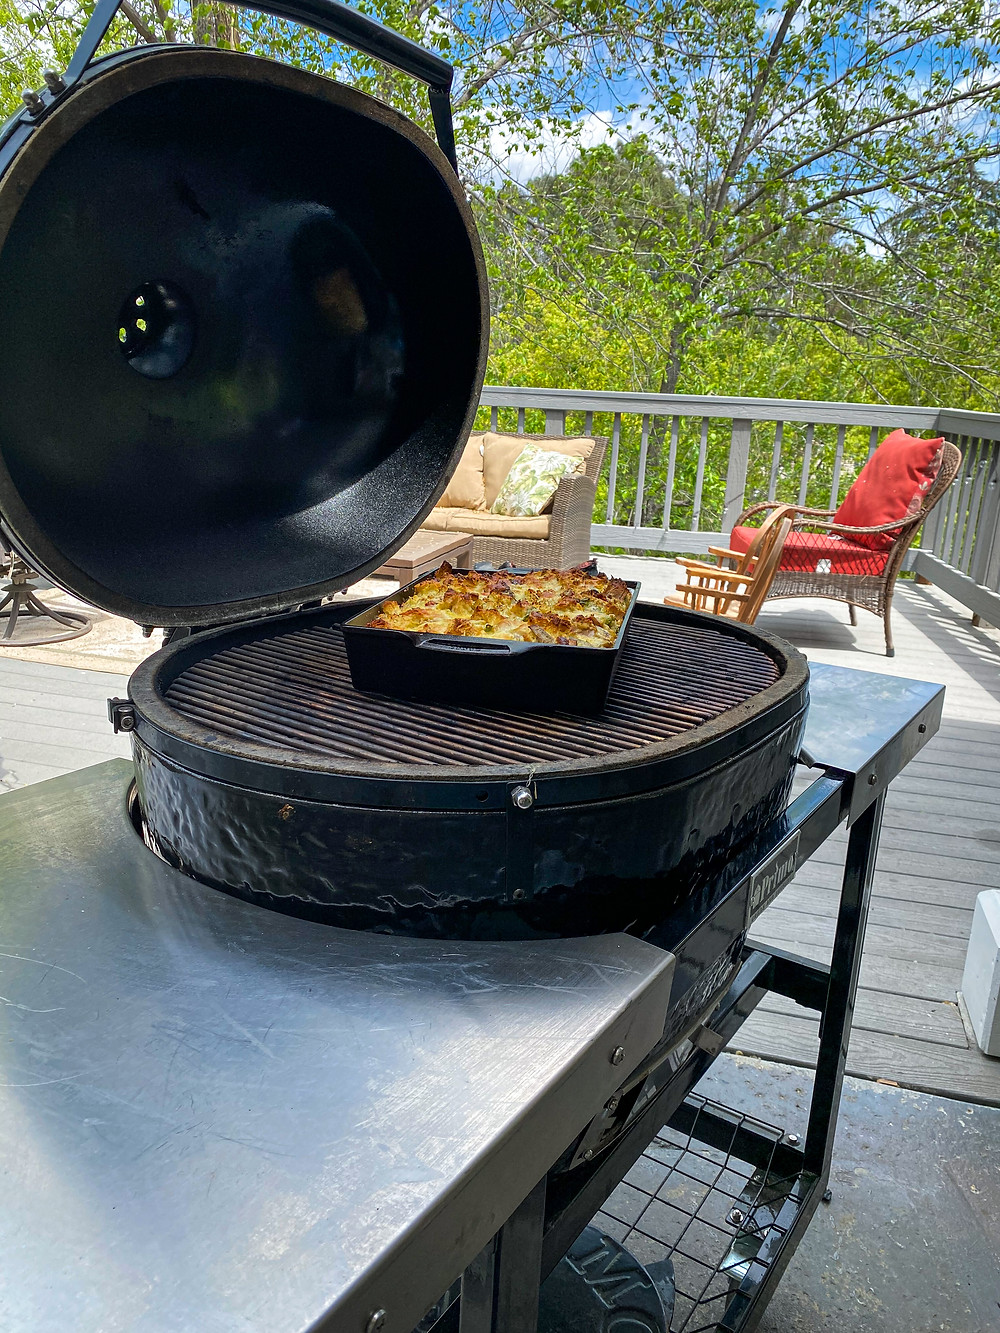 Primo Grill with a smoked strata in a casserole pan.